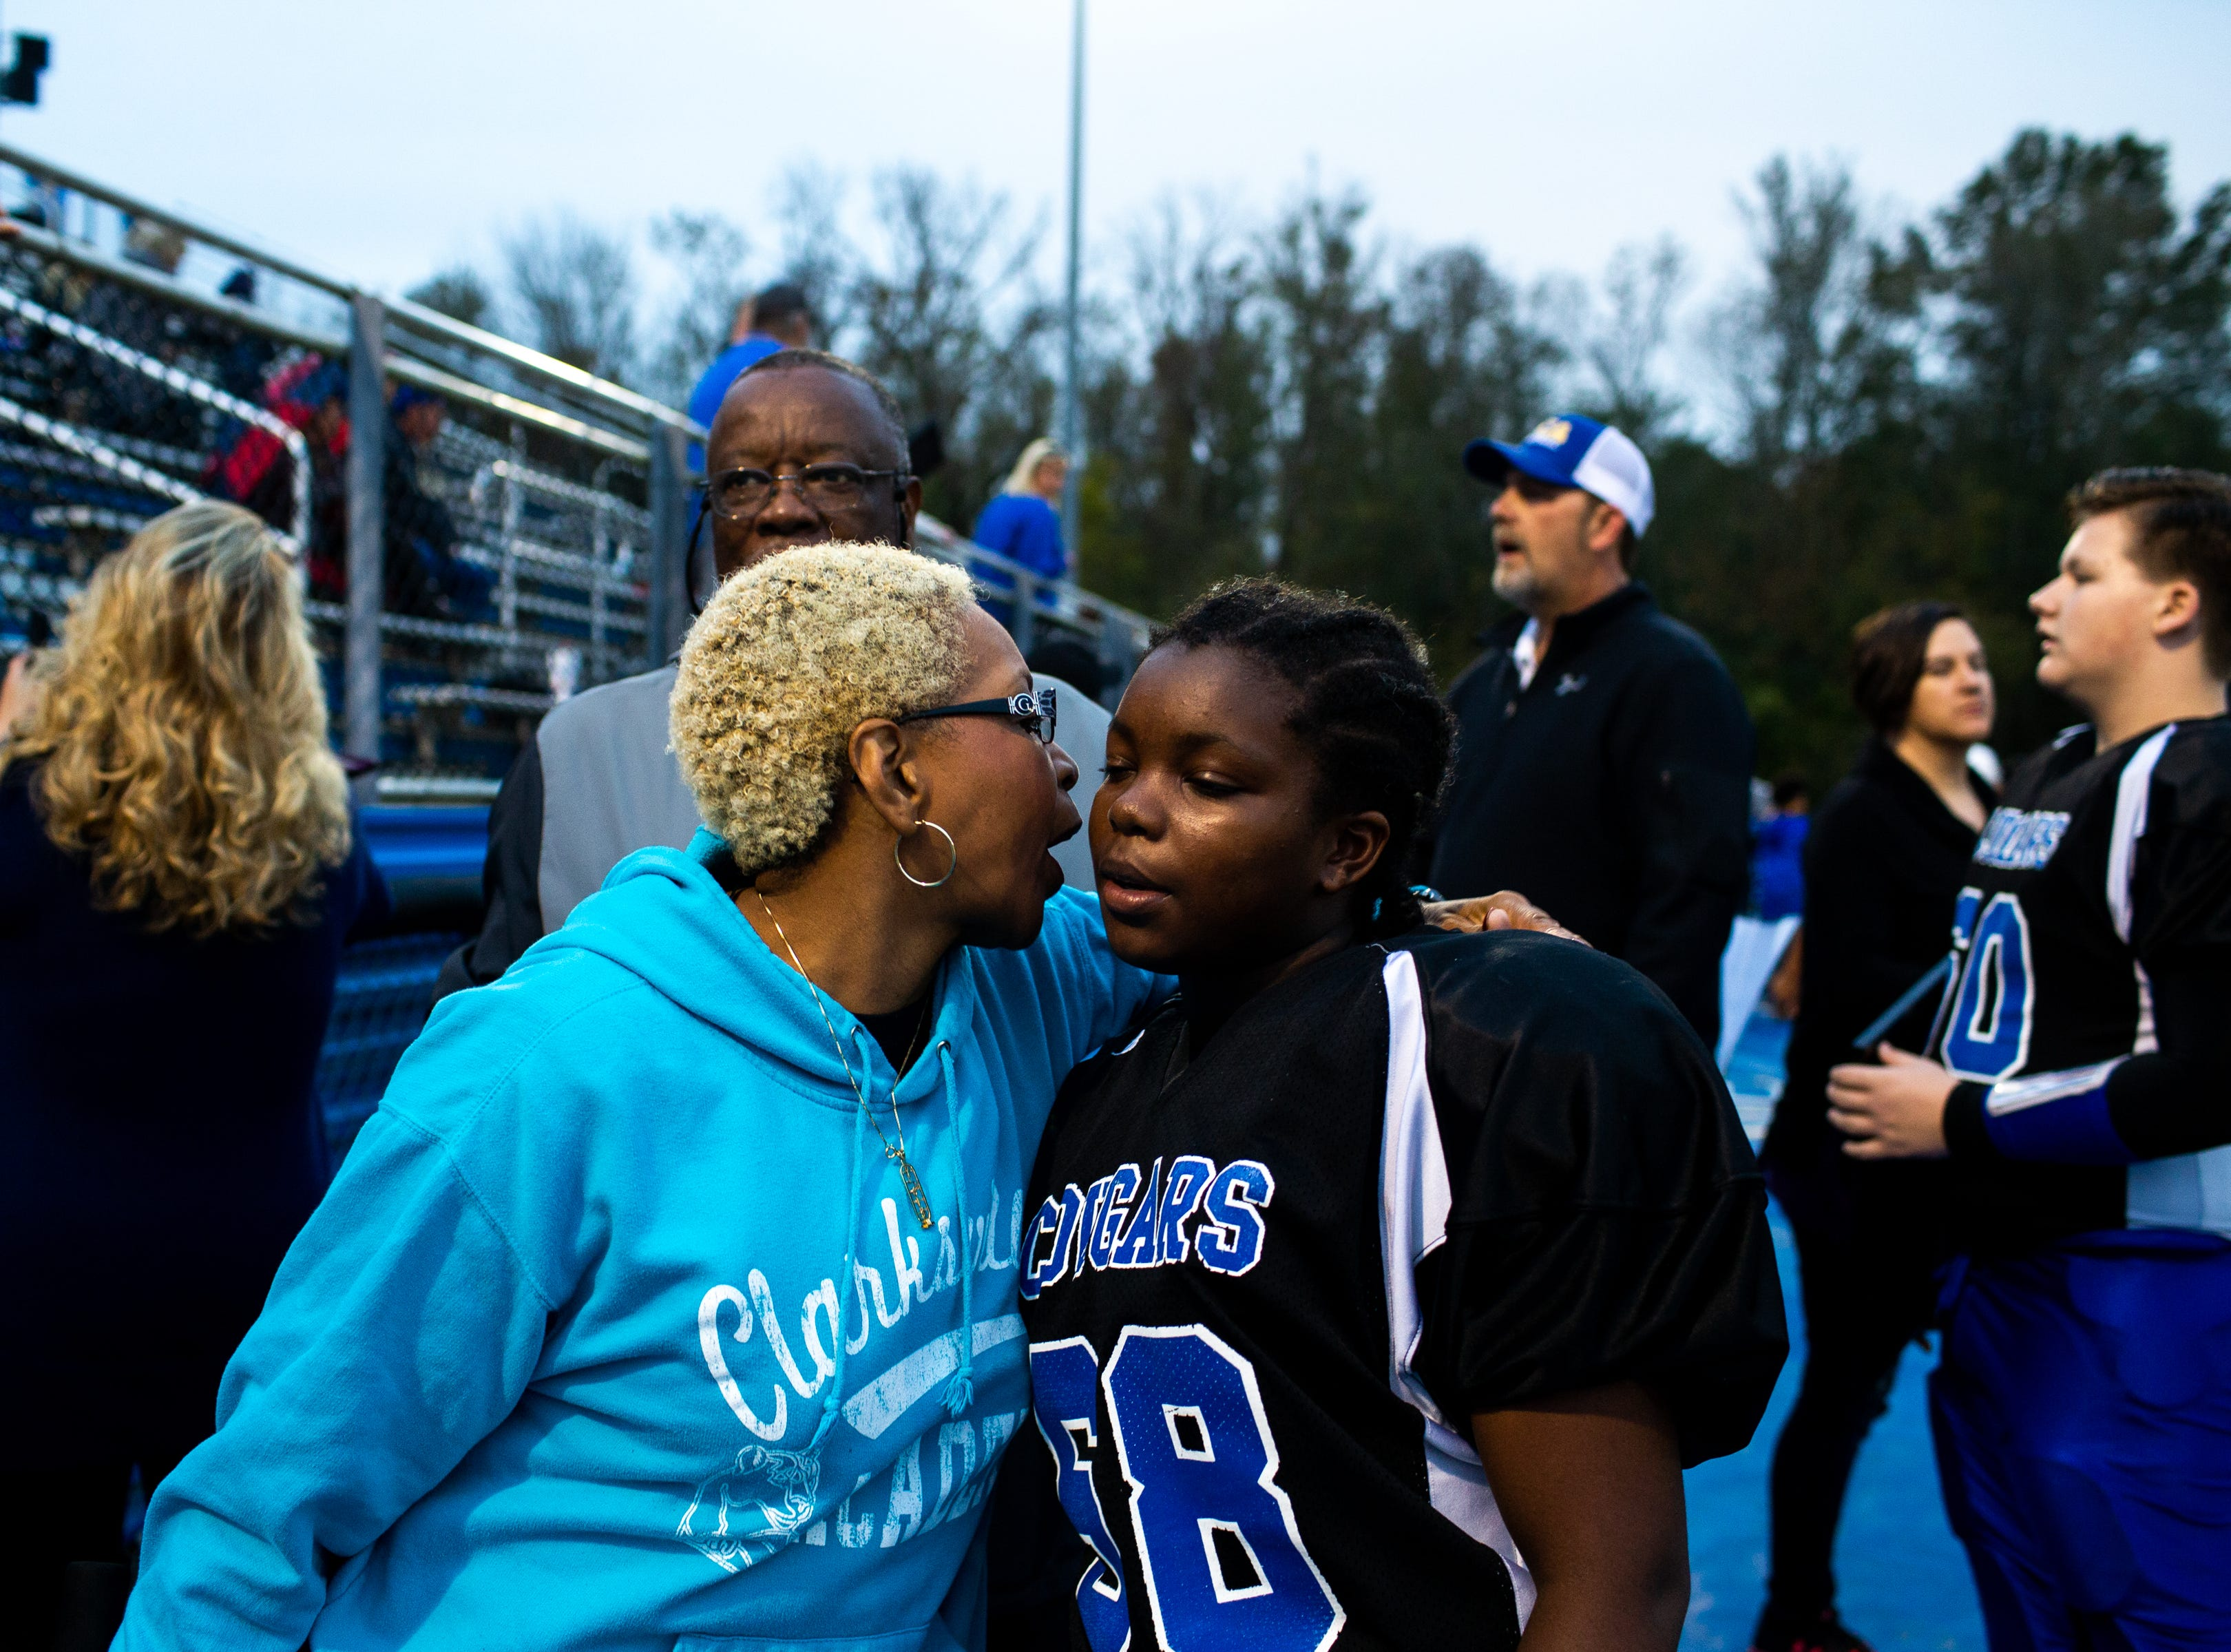 Sheila Bryant kisses her child, Madisen's cheek before their game at the Clarksville Academy Sports Complex Thursday, Oct. 25, 2018, in Clarksville, Tenn.